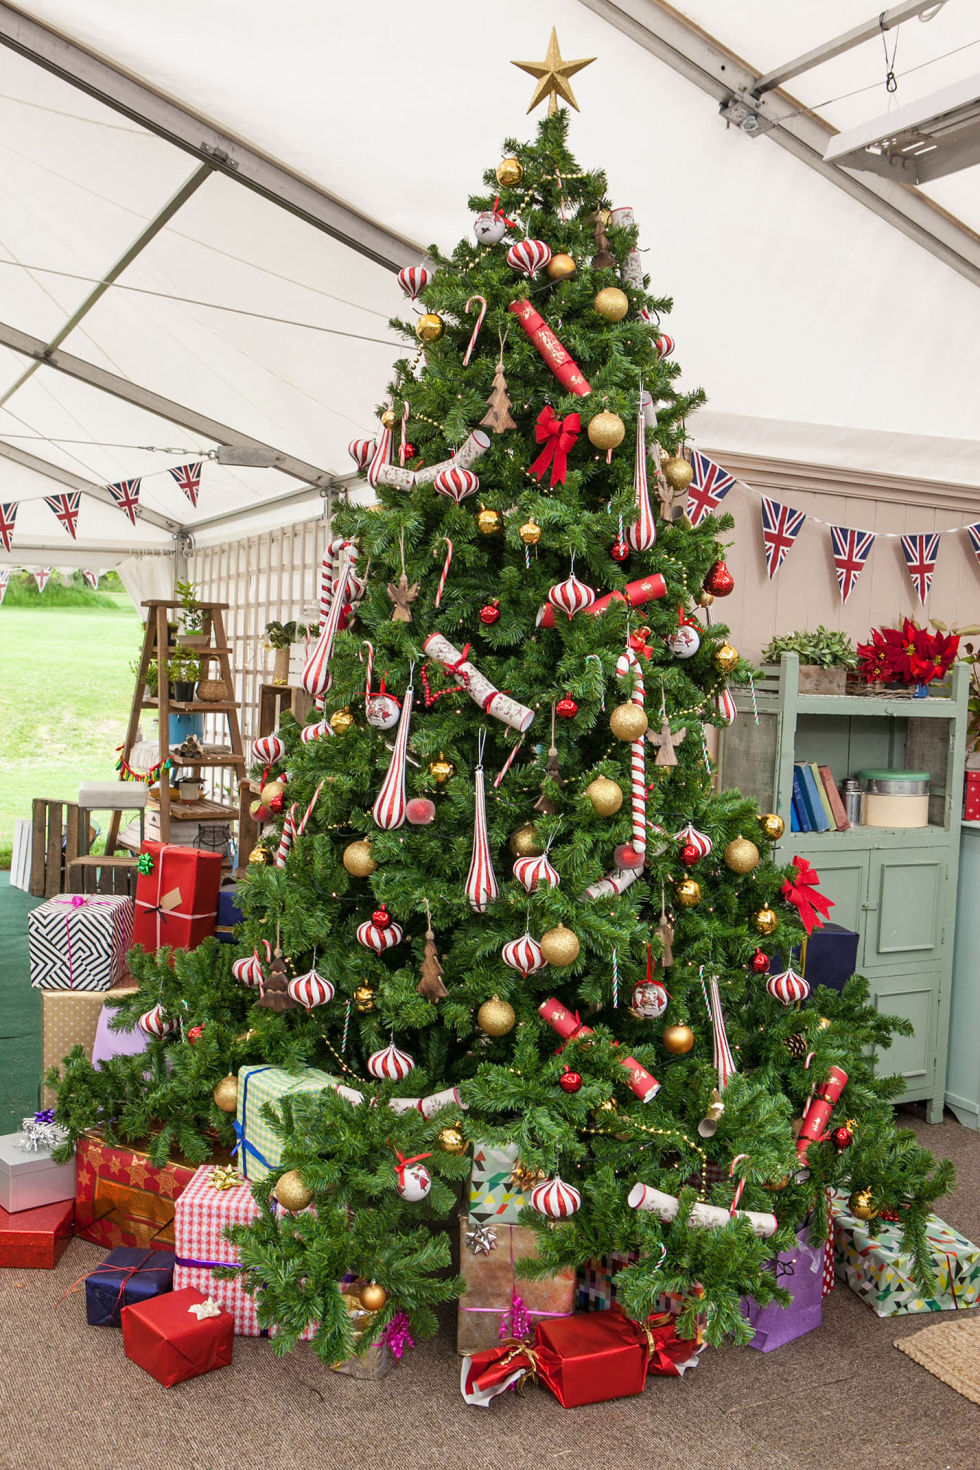 The Great Christmas Bake Off Ising: Feast Your Eyes On These Pictures  From The Mustsee Episodes